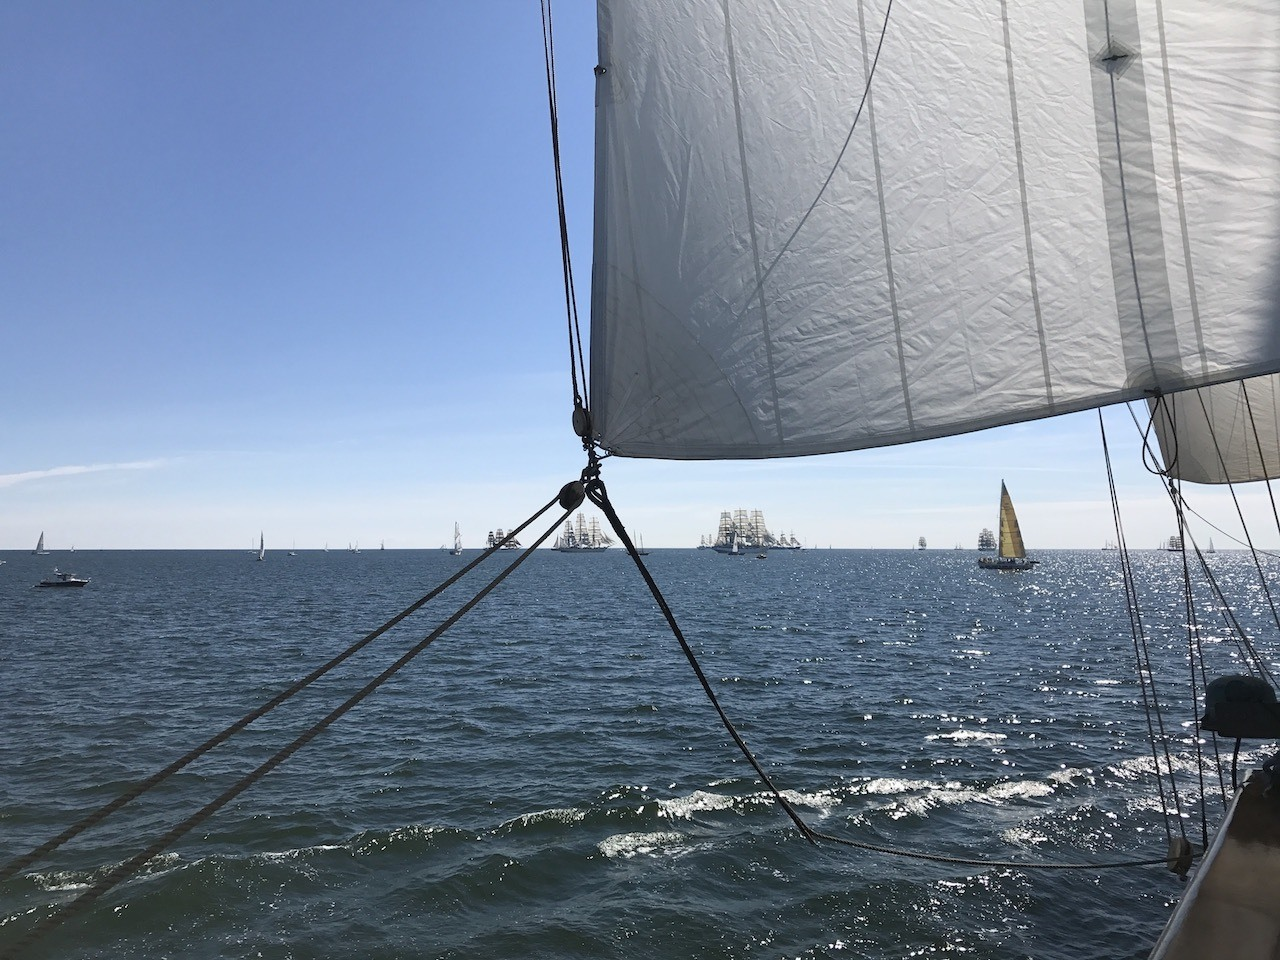 Tall ship trips are becoming more popular; it's all about learning how to sail!